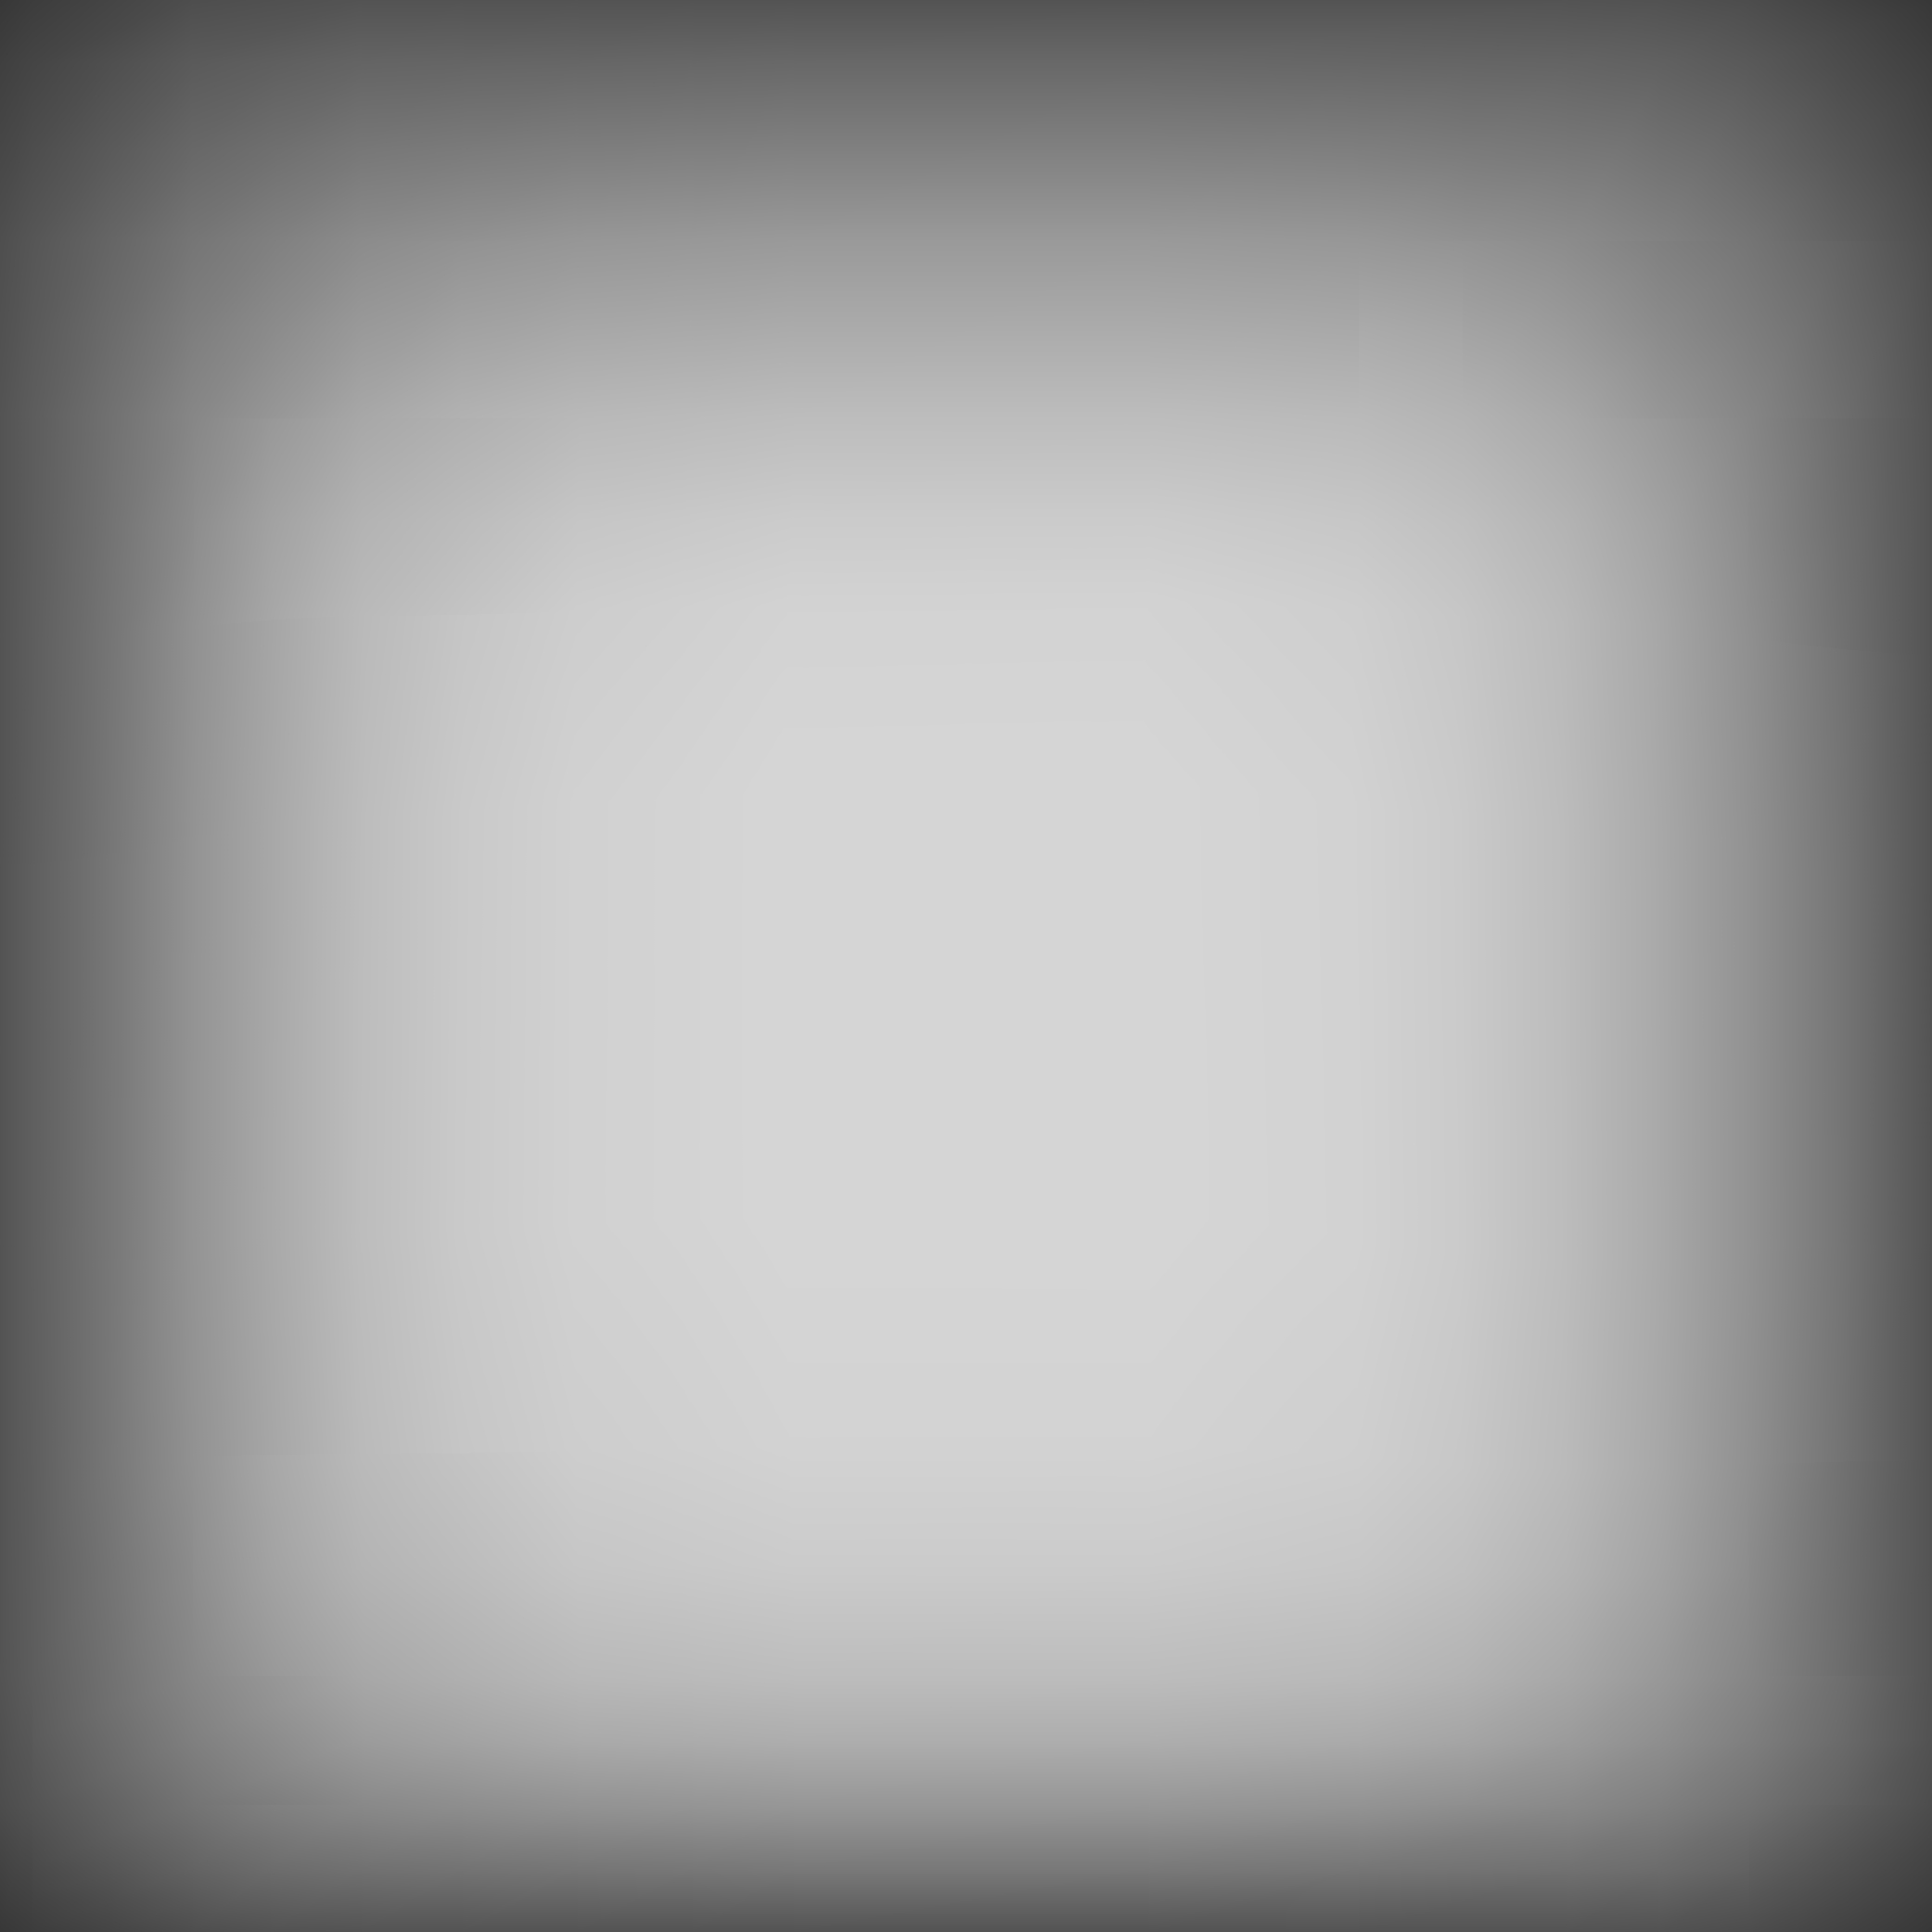 Blurred silver effect holographic gradient background example image 8